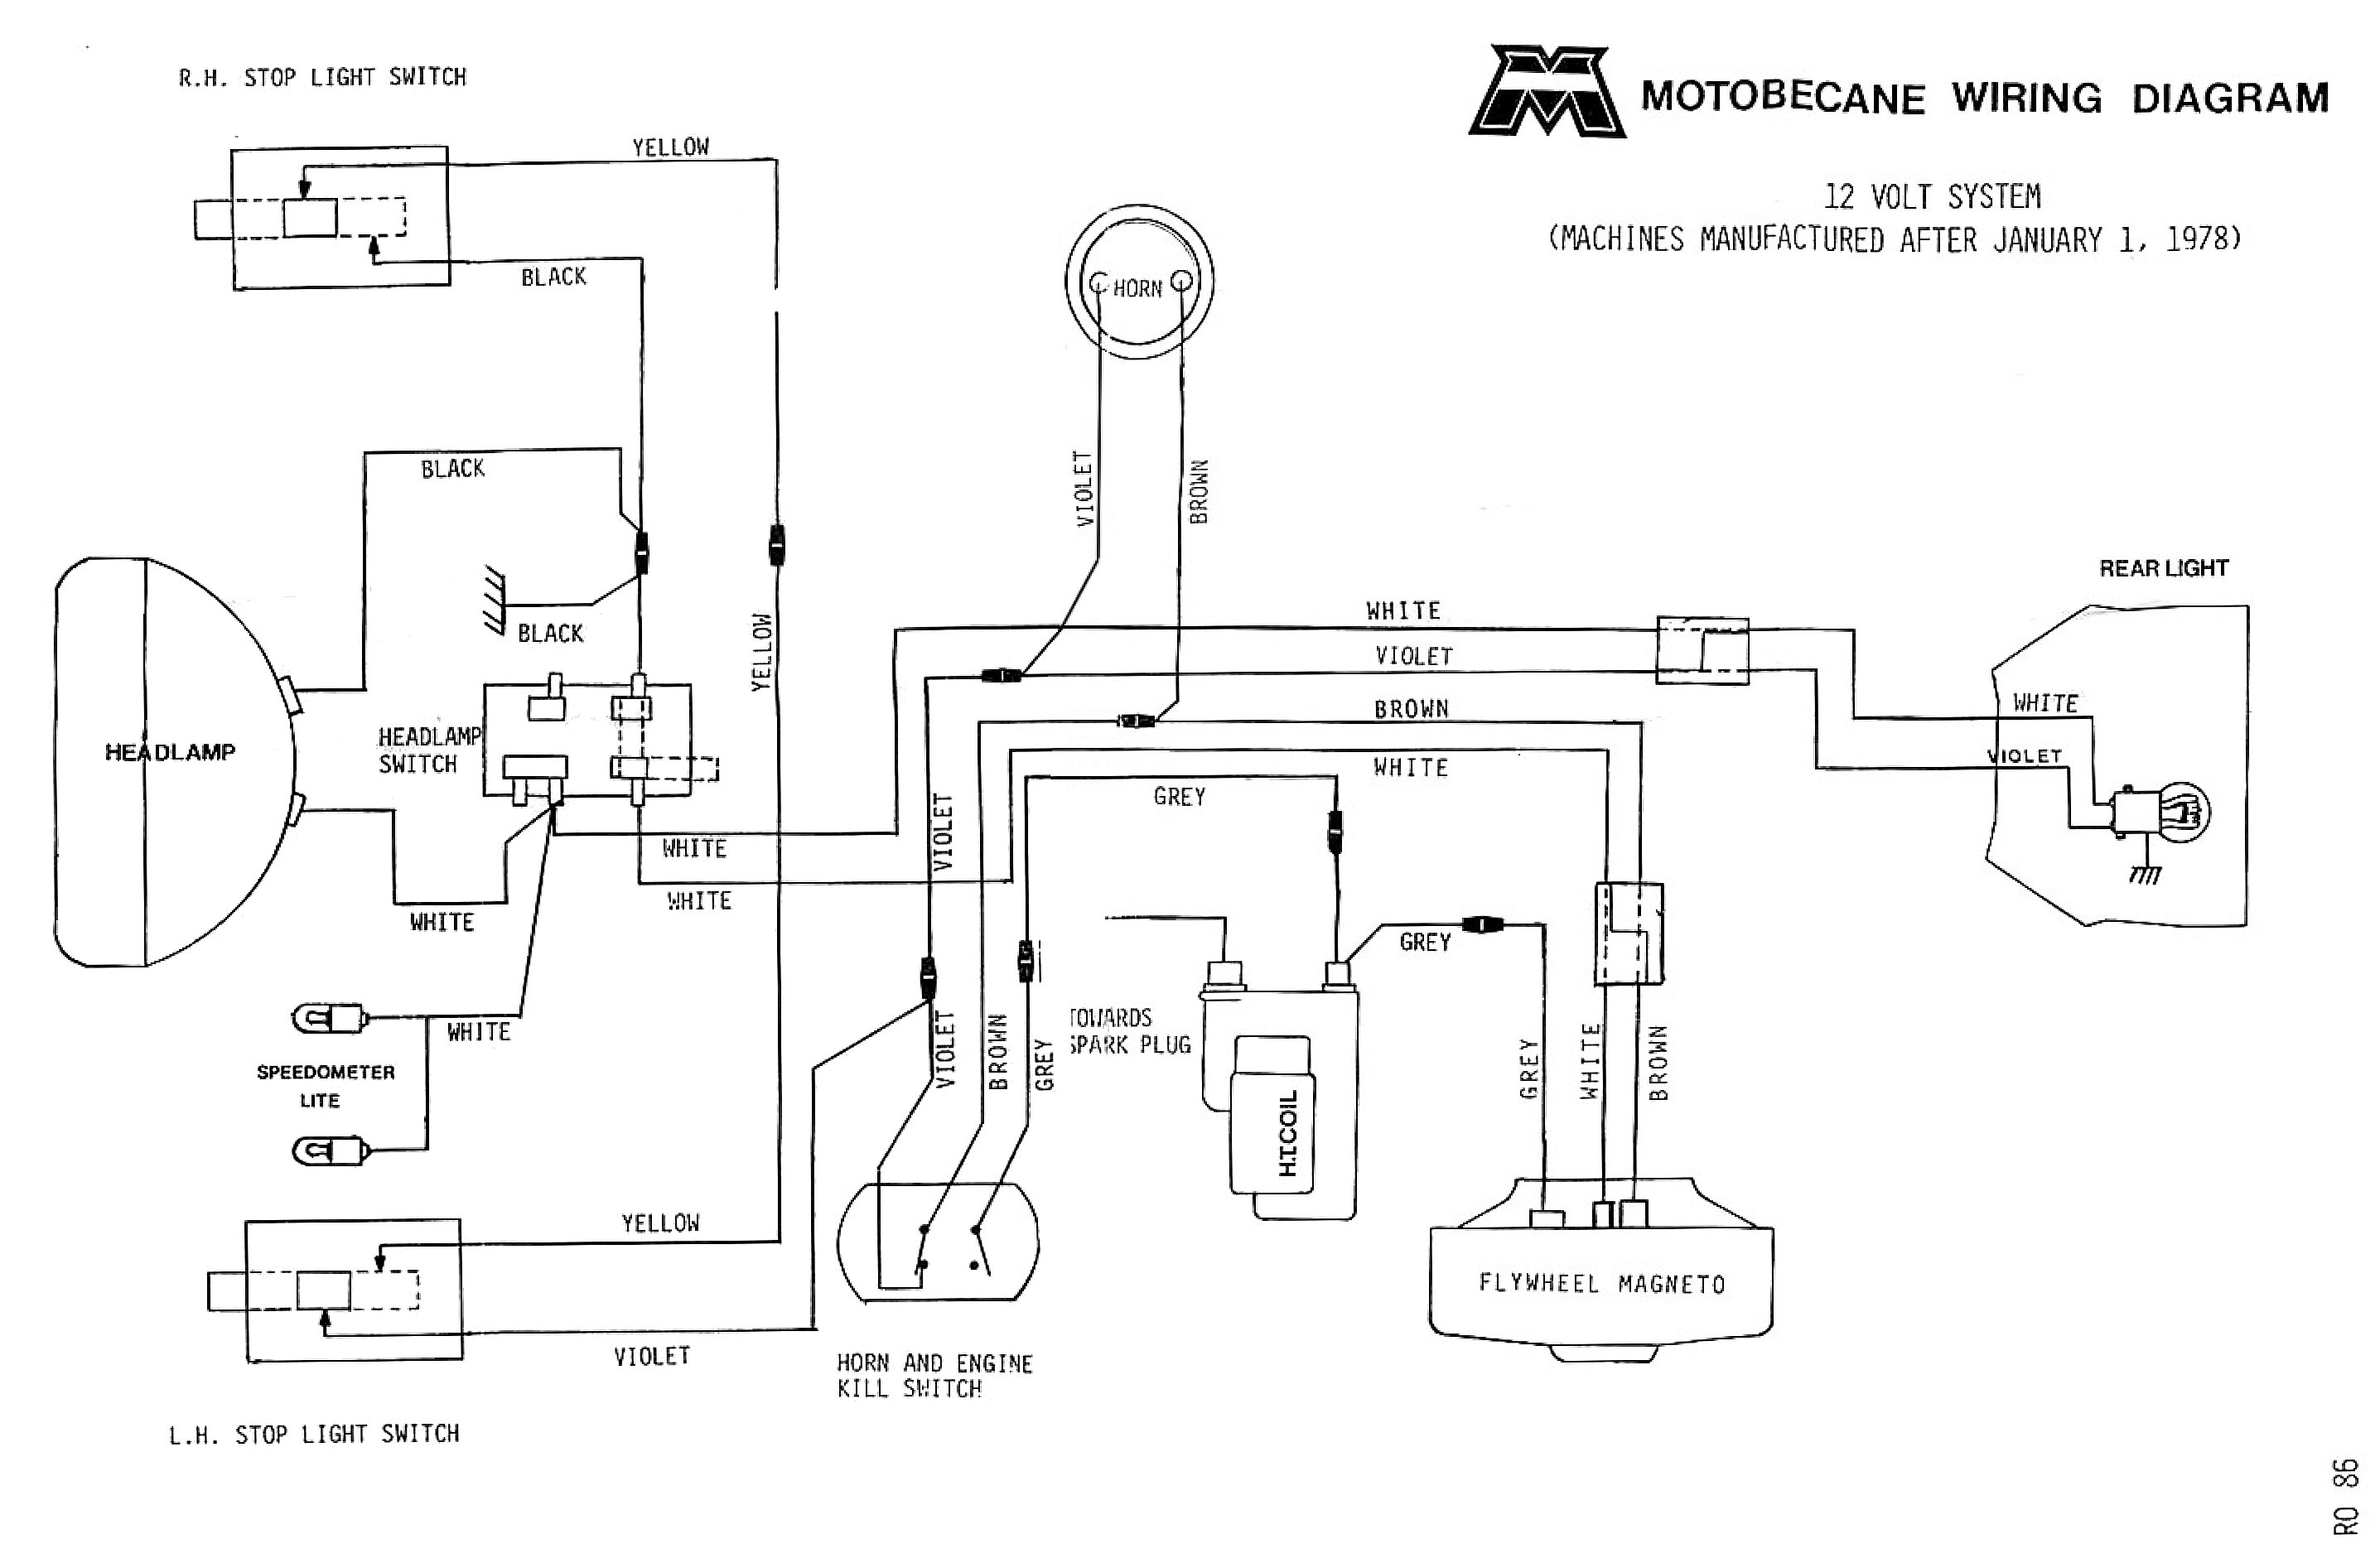 wiring diagram 1956 ford 800 tractor wiring diagramford 800 wiring diagram wiring diagram schematicsford 800 wiring diagram data wiring diagram 1956 ford 800